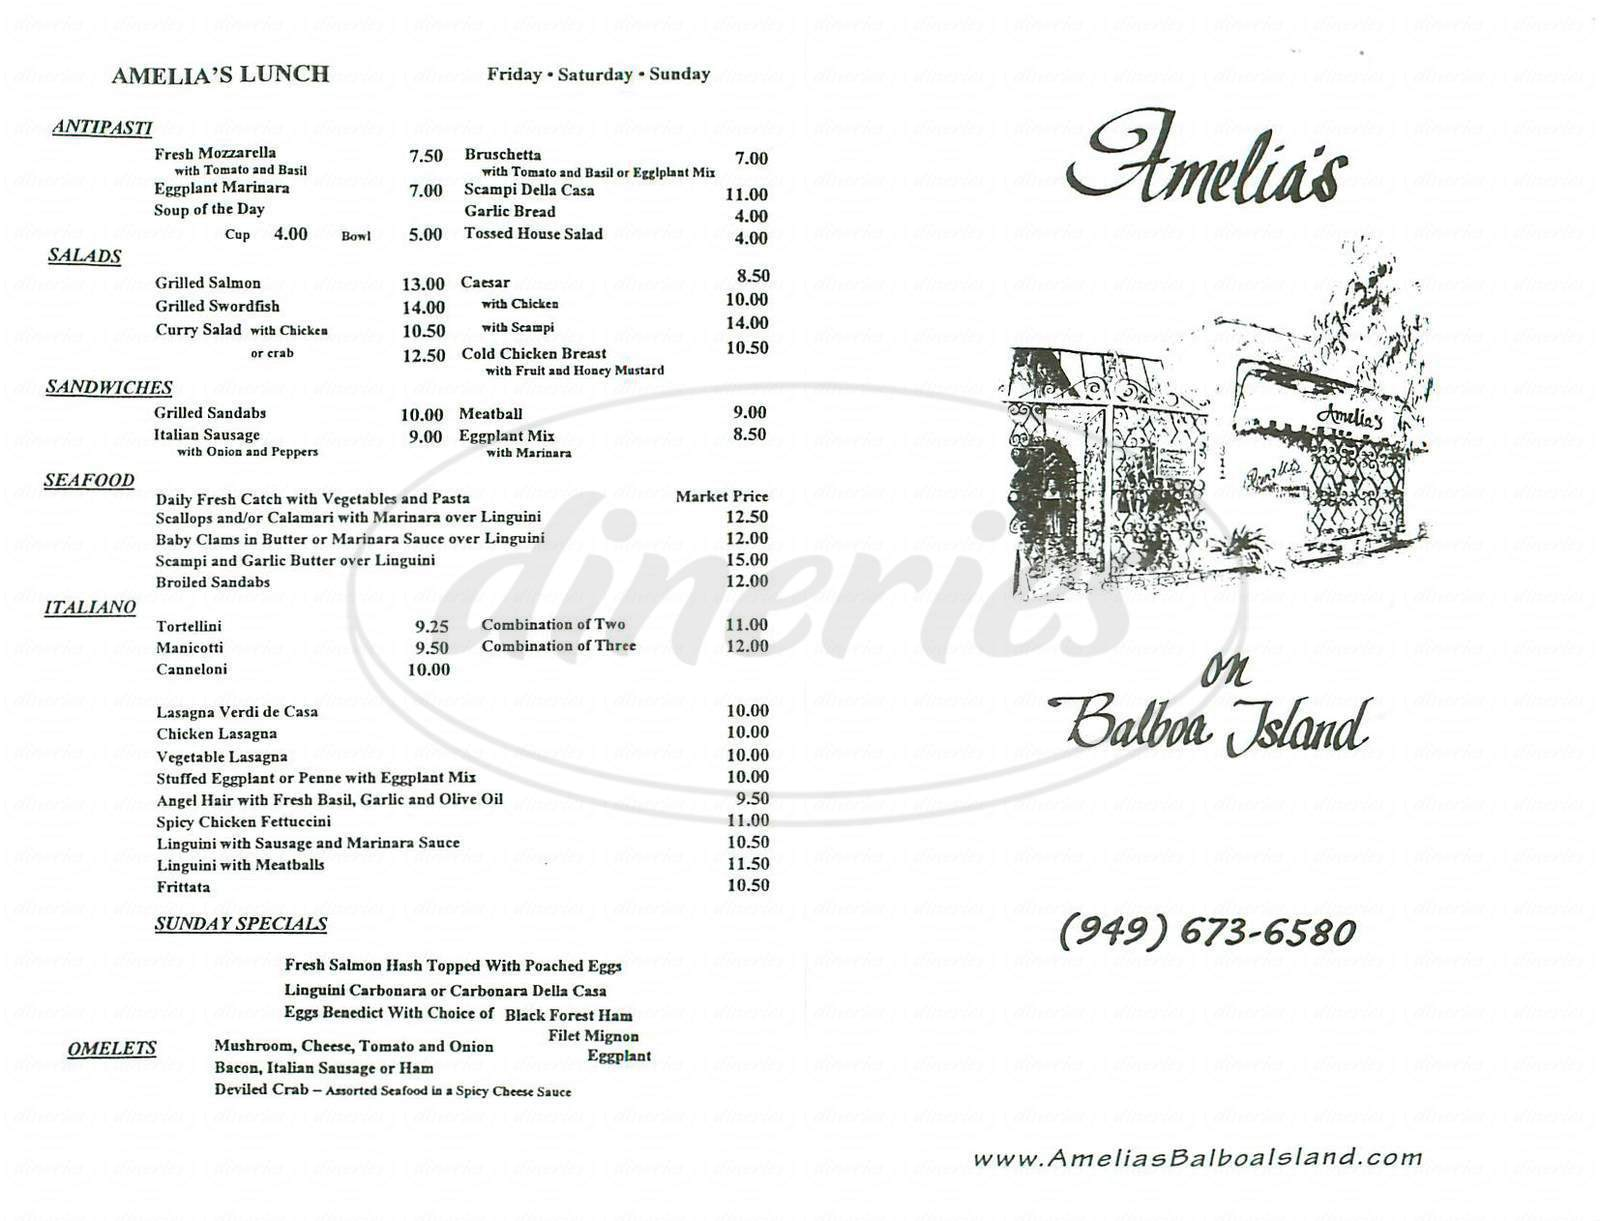 menu for Amelias on Balboa Island